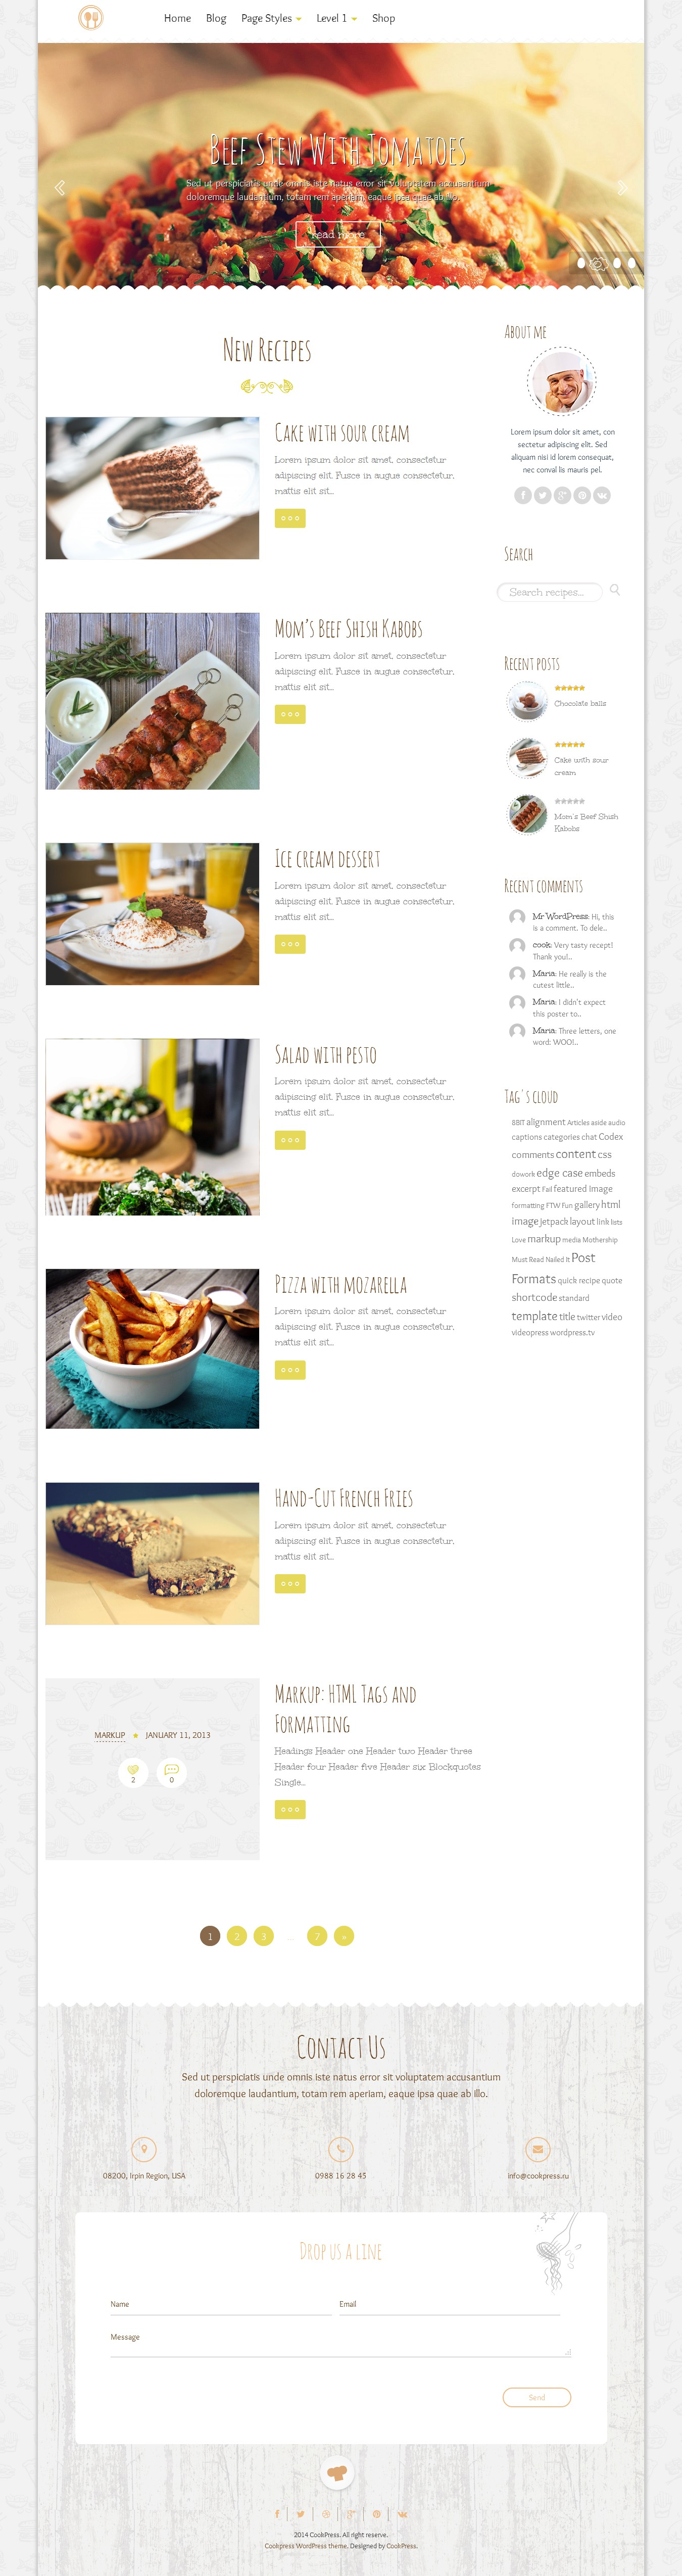 delice plus cooking or crafting wp theme \u2022 by cookpress  american regional cuisine firefox.php #2